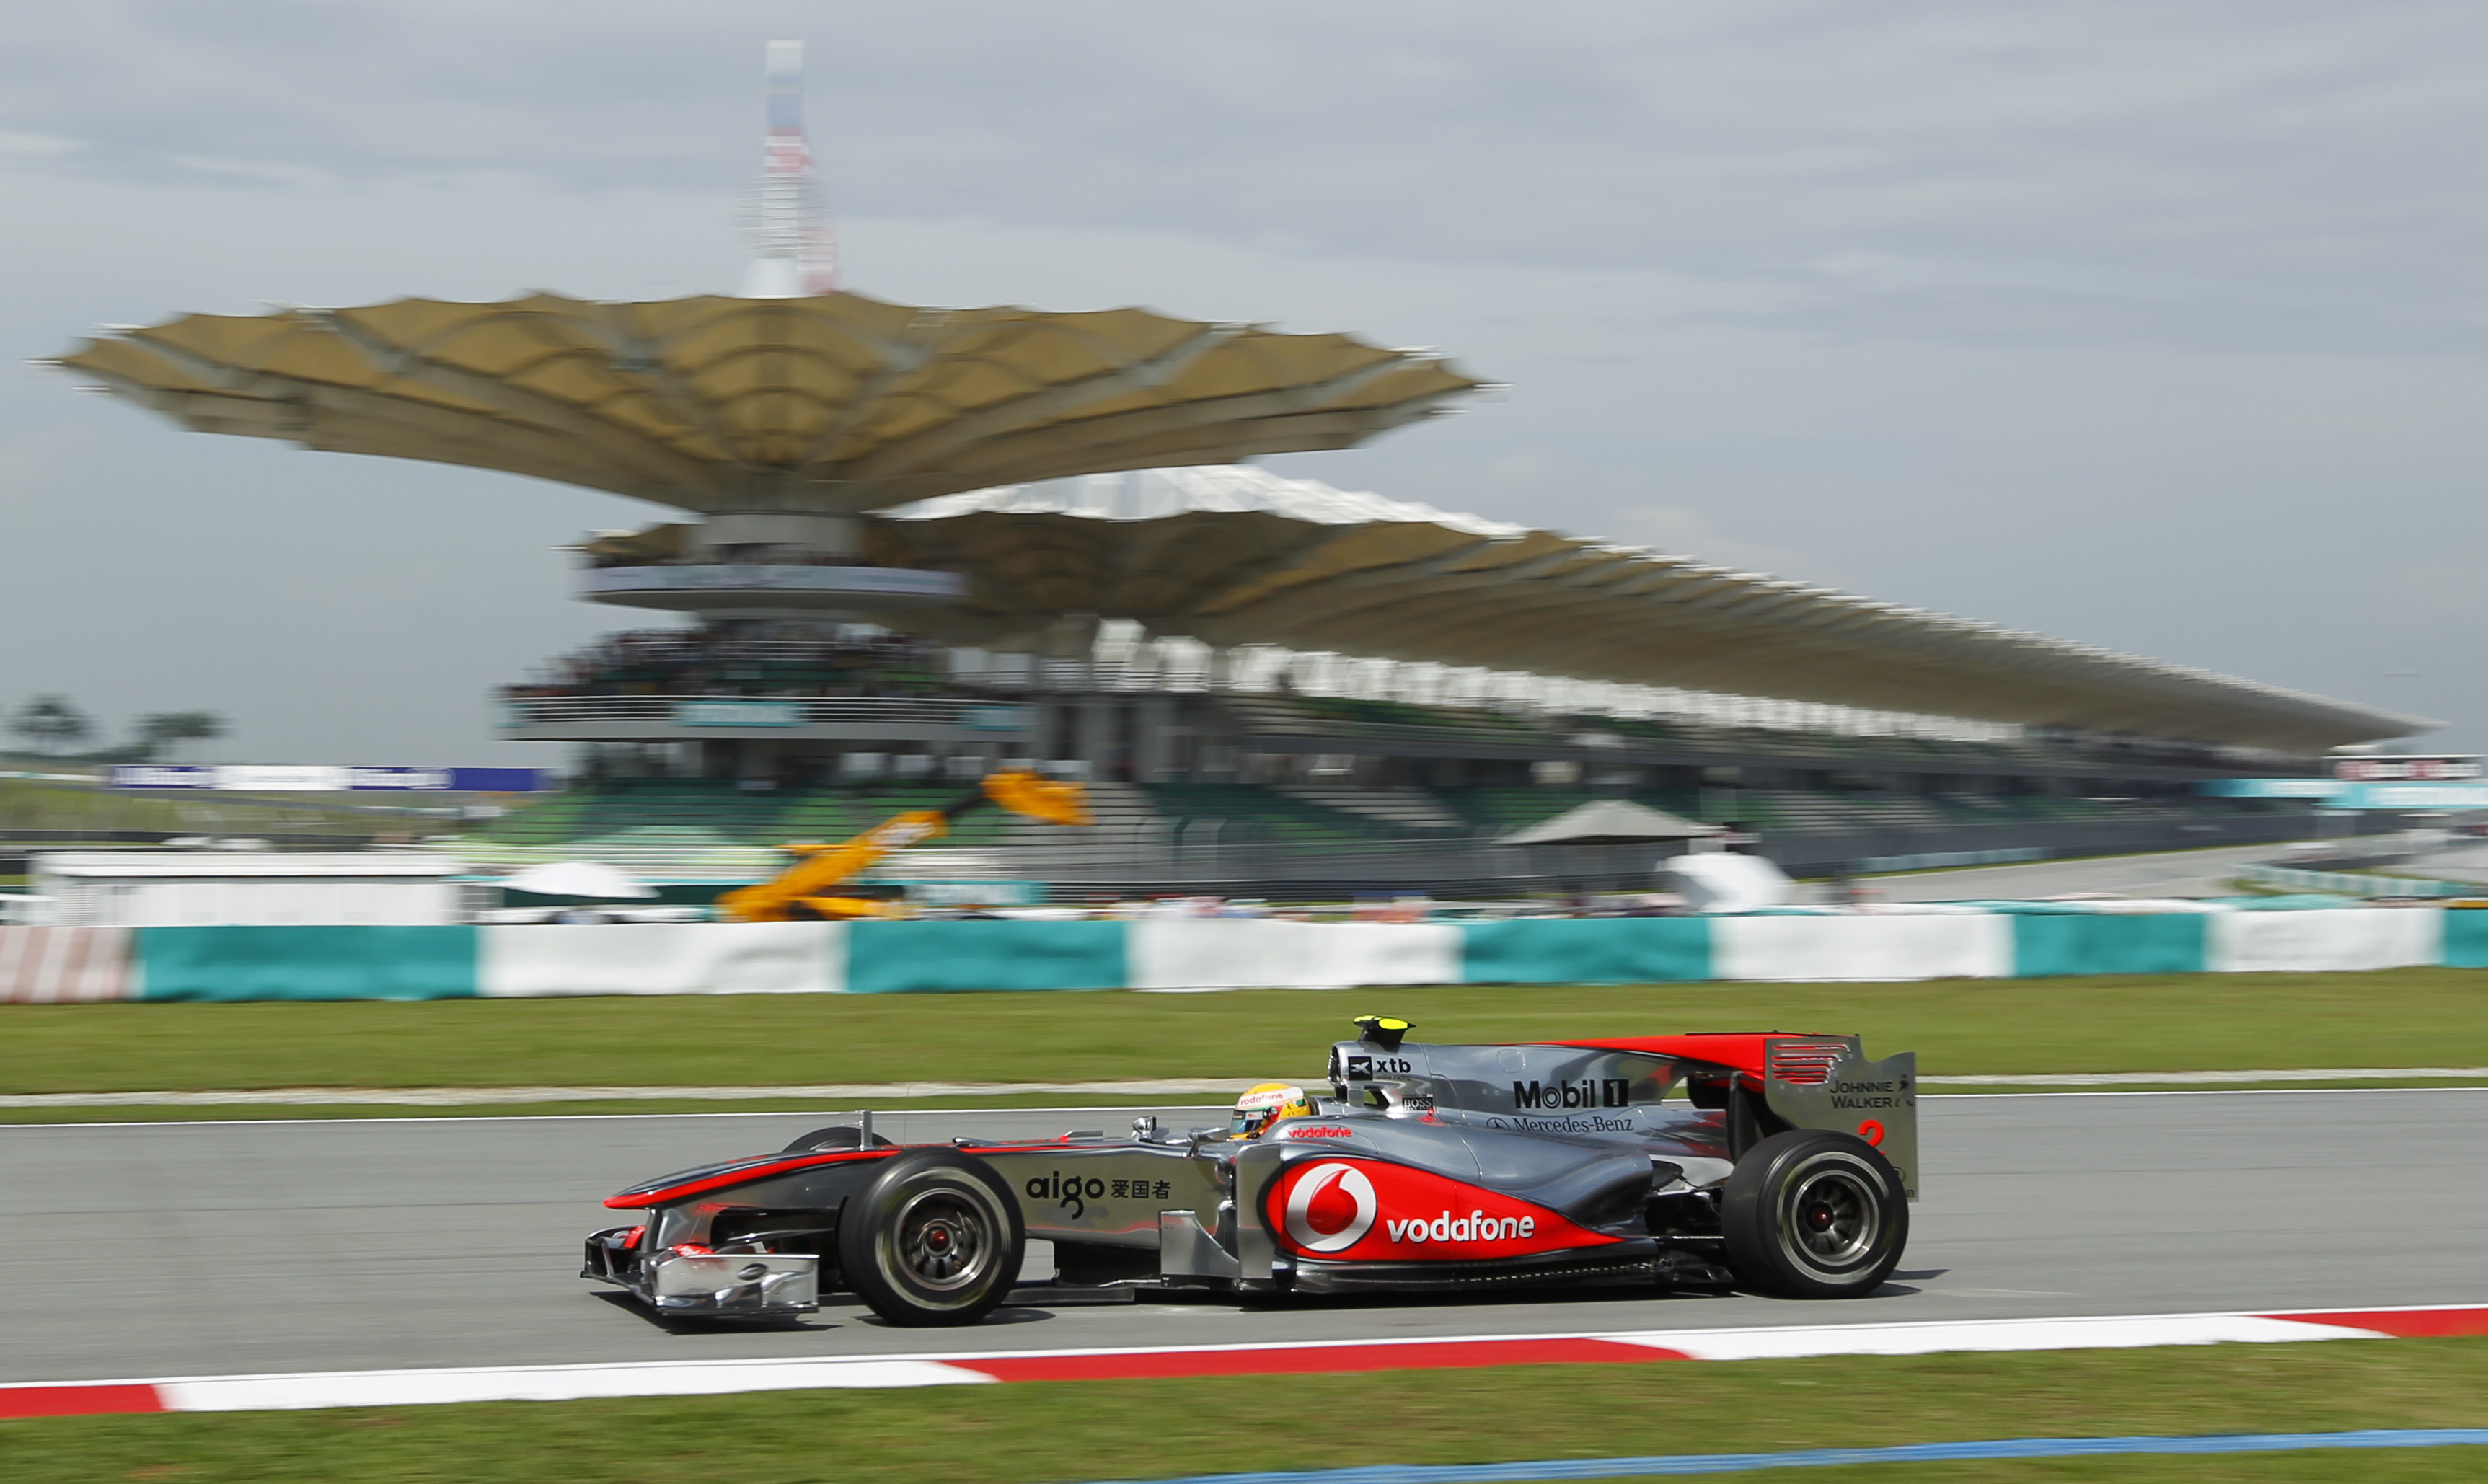 McLaren Formula One driver Lewis Hamilton of Britain in action during the first practice session for the Malaysian Formula One Grand Prix in Sepang, M...